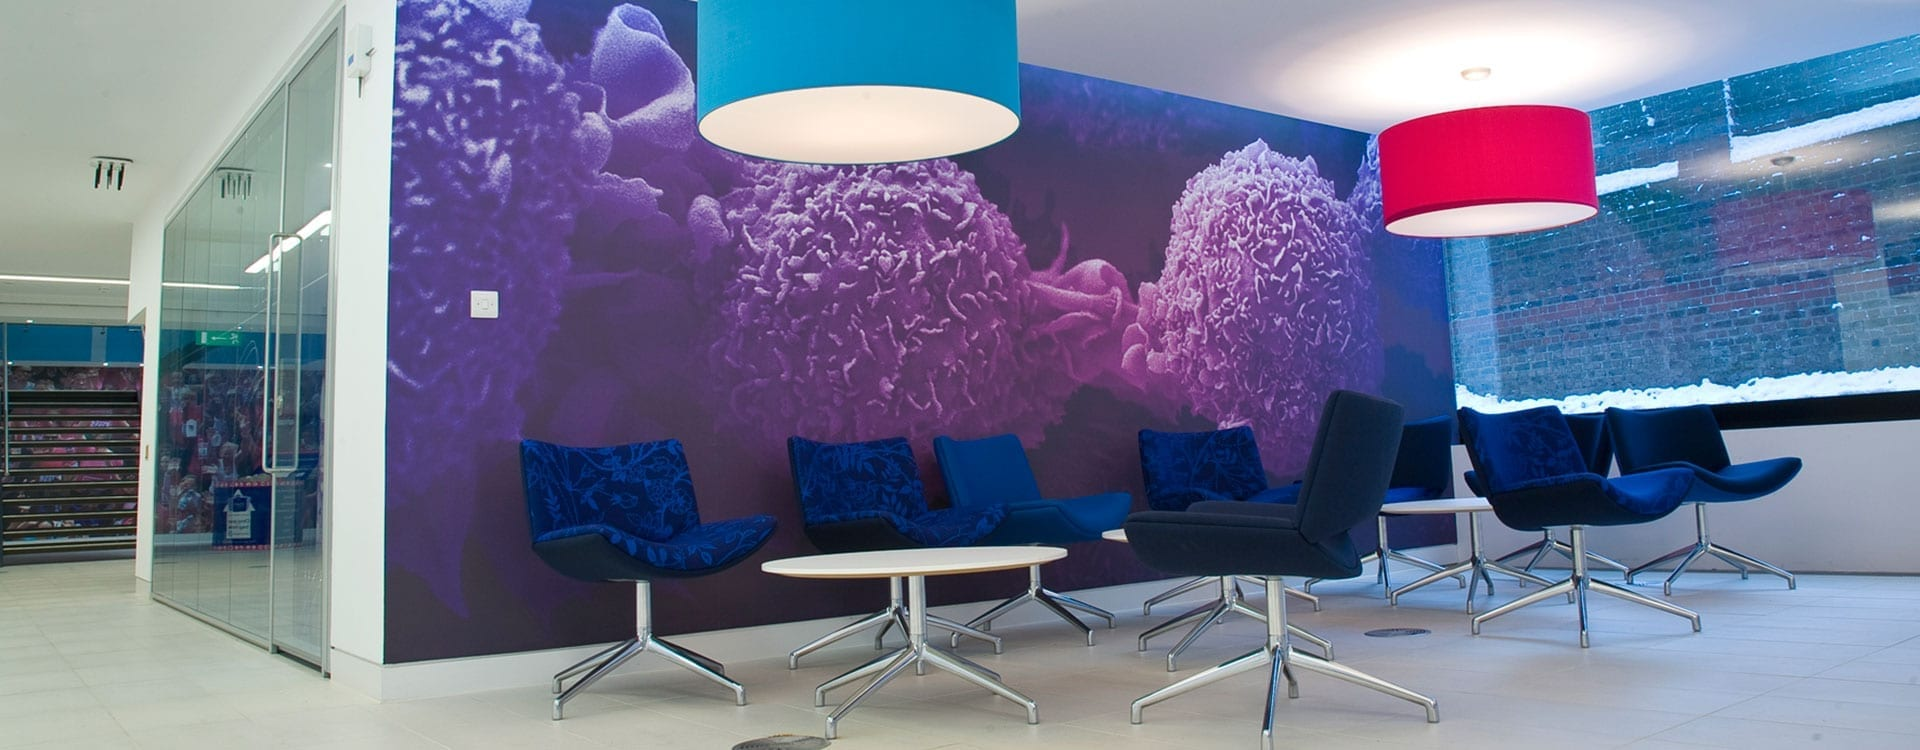 Inspired large format wall graphic bringing colour to office areas